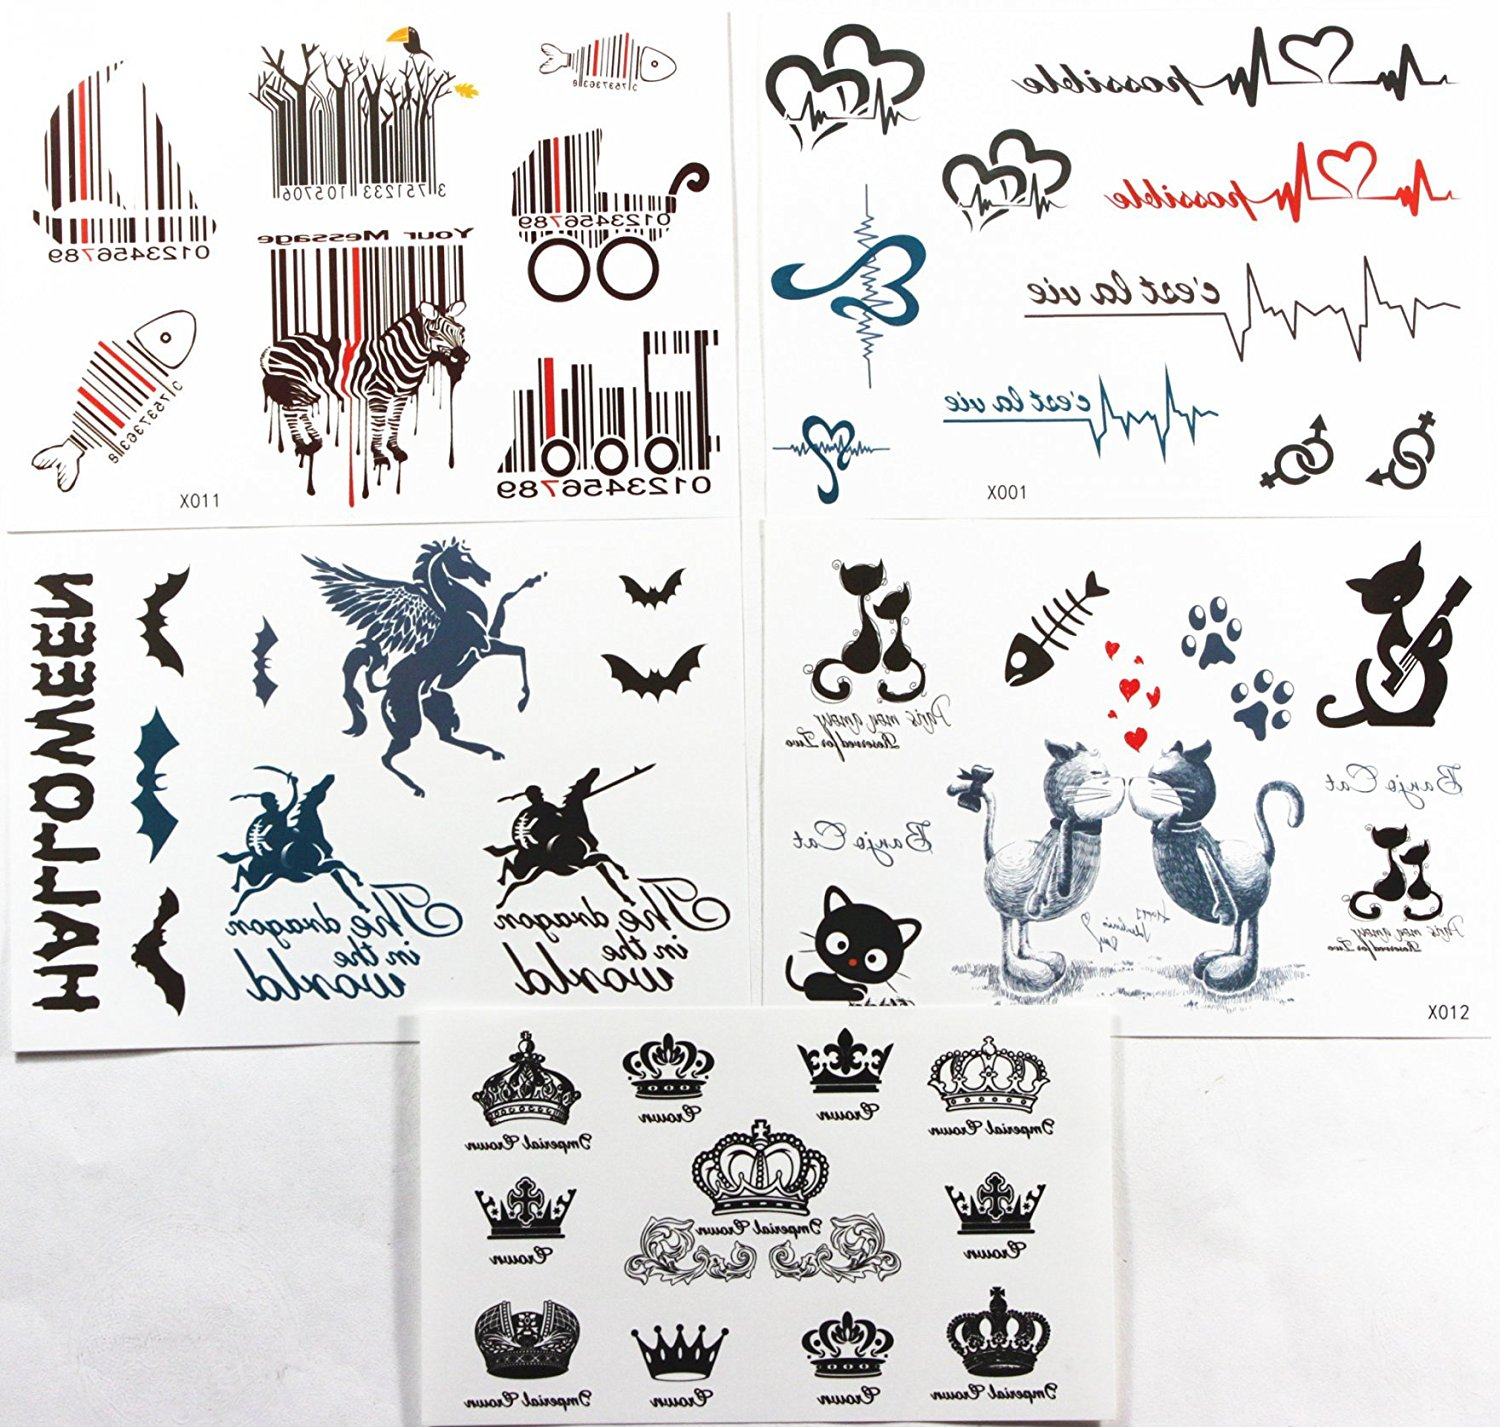 d0e515989 Long last realistic temporary tattoo stickers combination 5pcs/package  different designs, it includes crowns